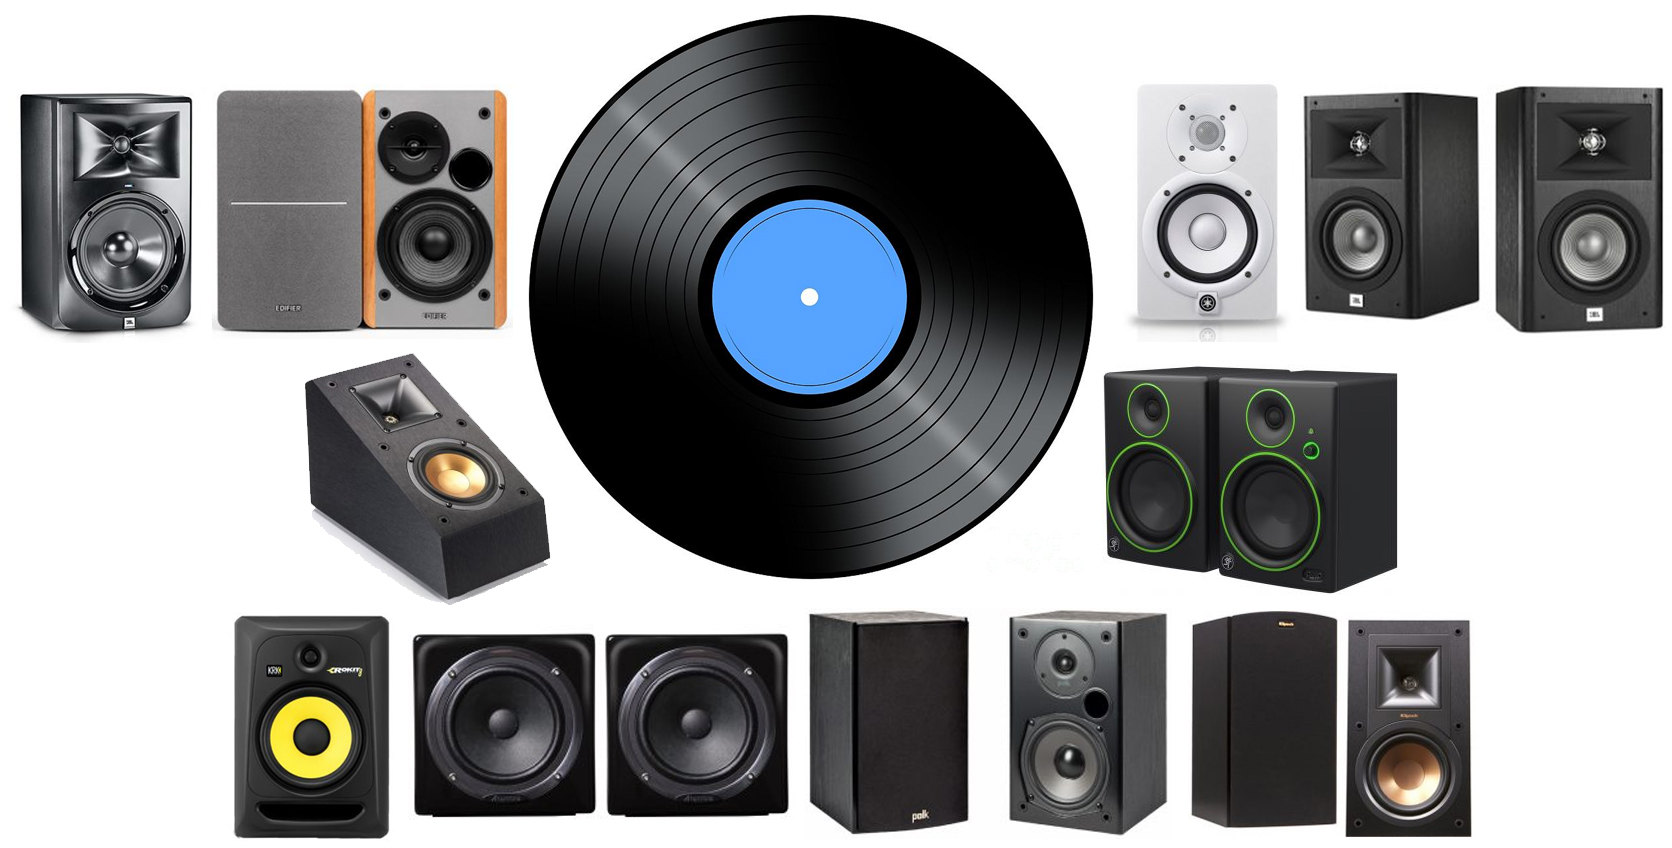 The Top 10 Best Speakers For Listening To Vinyl My